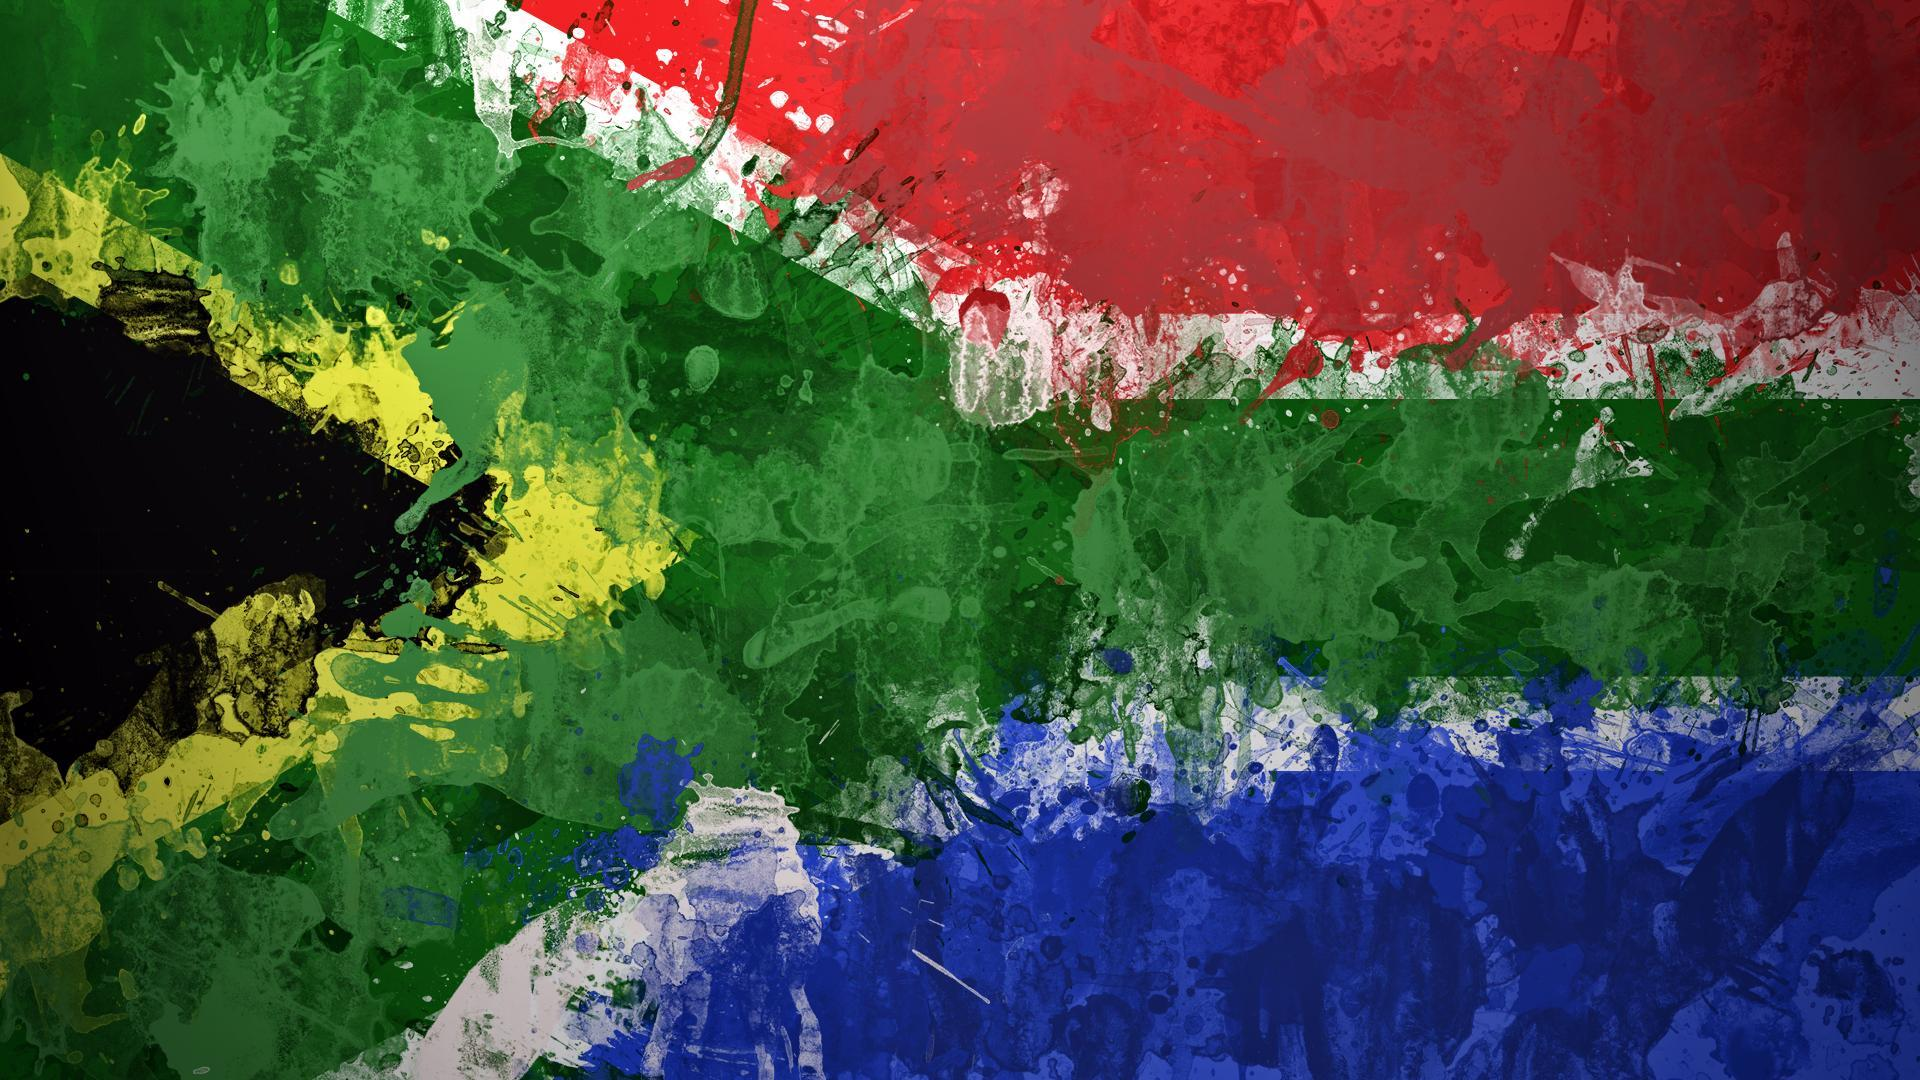 1920x1080 South African Flag Wallpaper for Android - APK Download